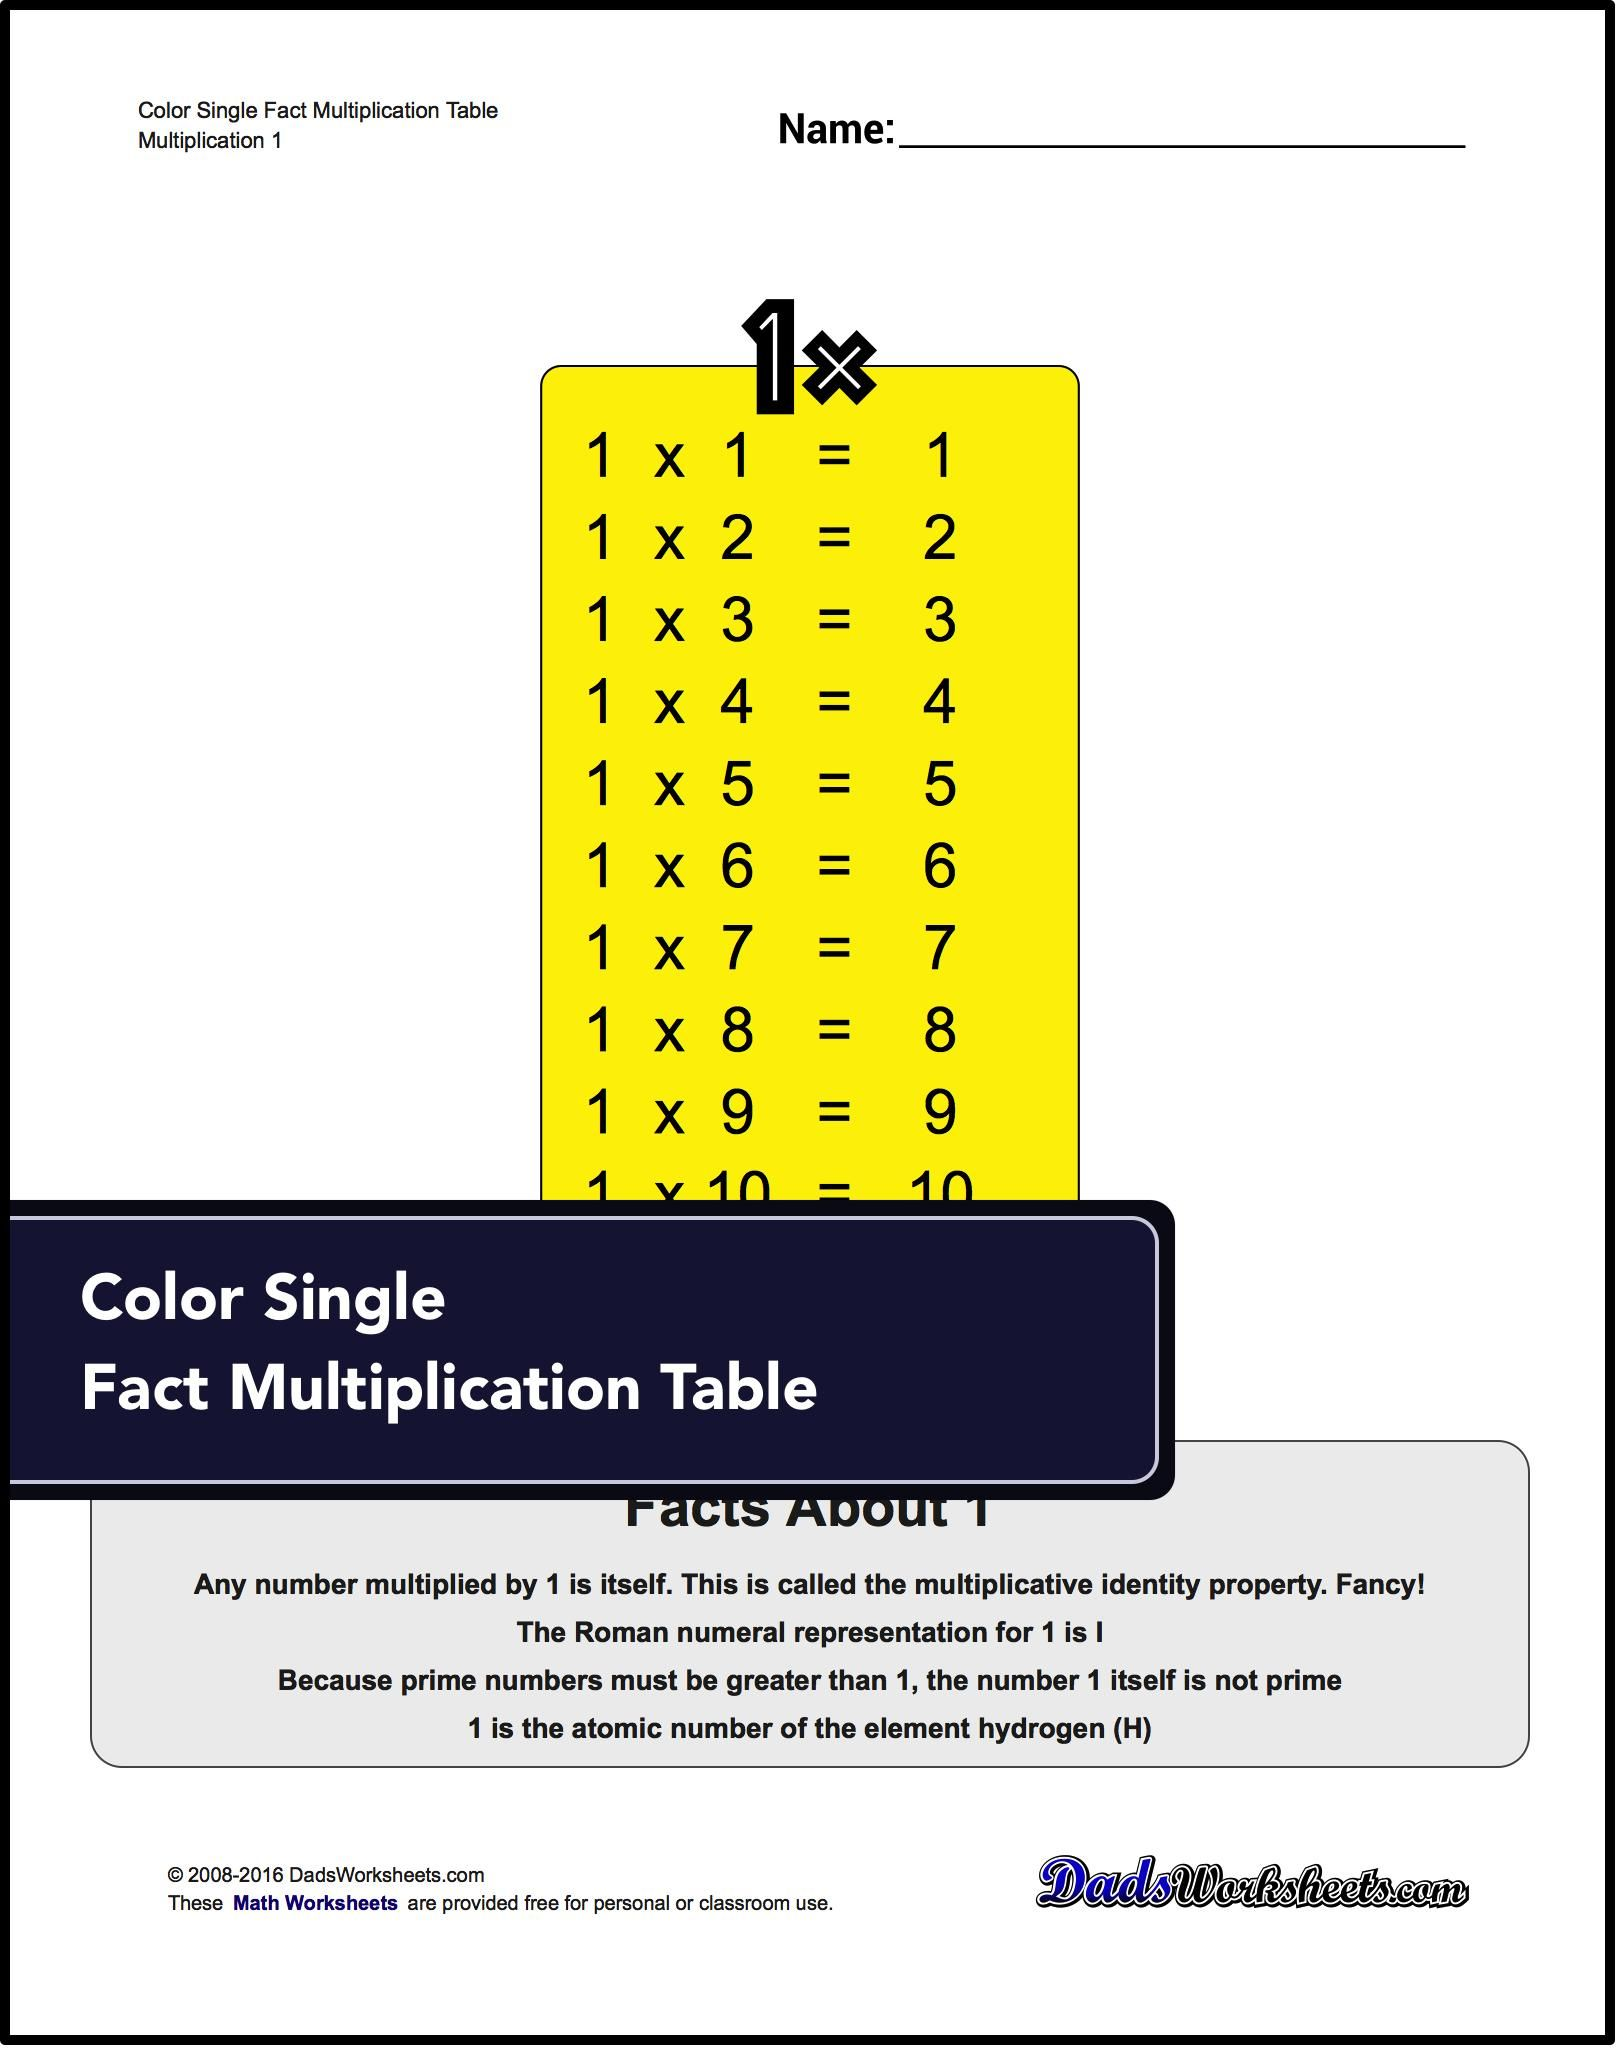 Thse Multiplication Table Printables Are Beautiful You